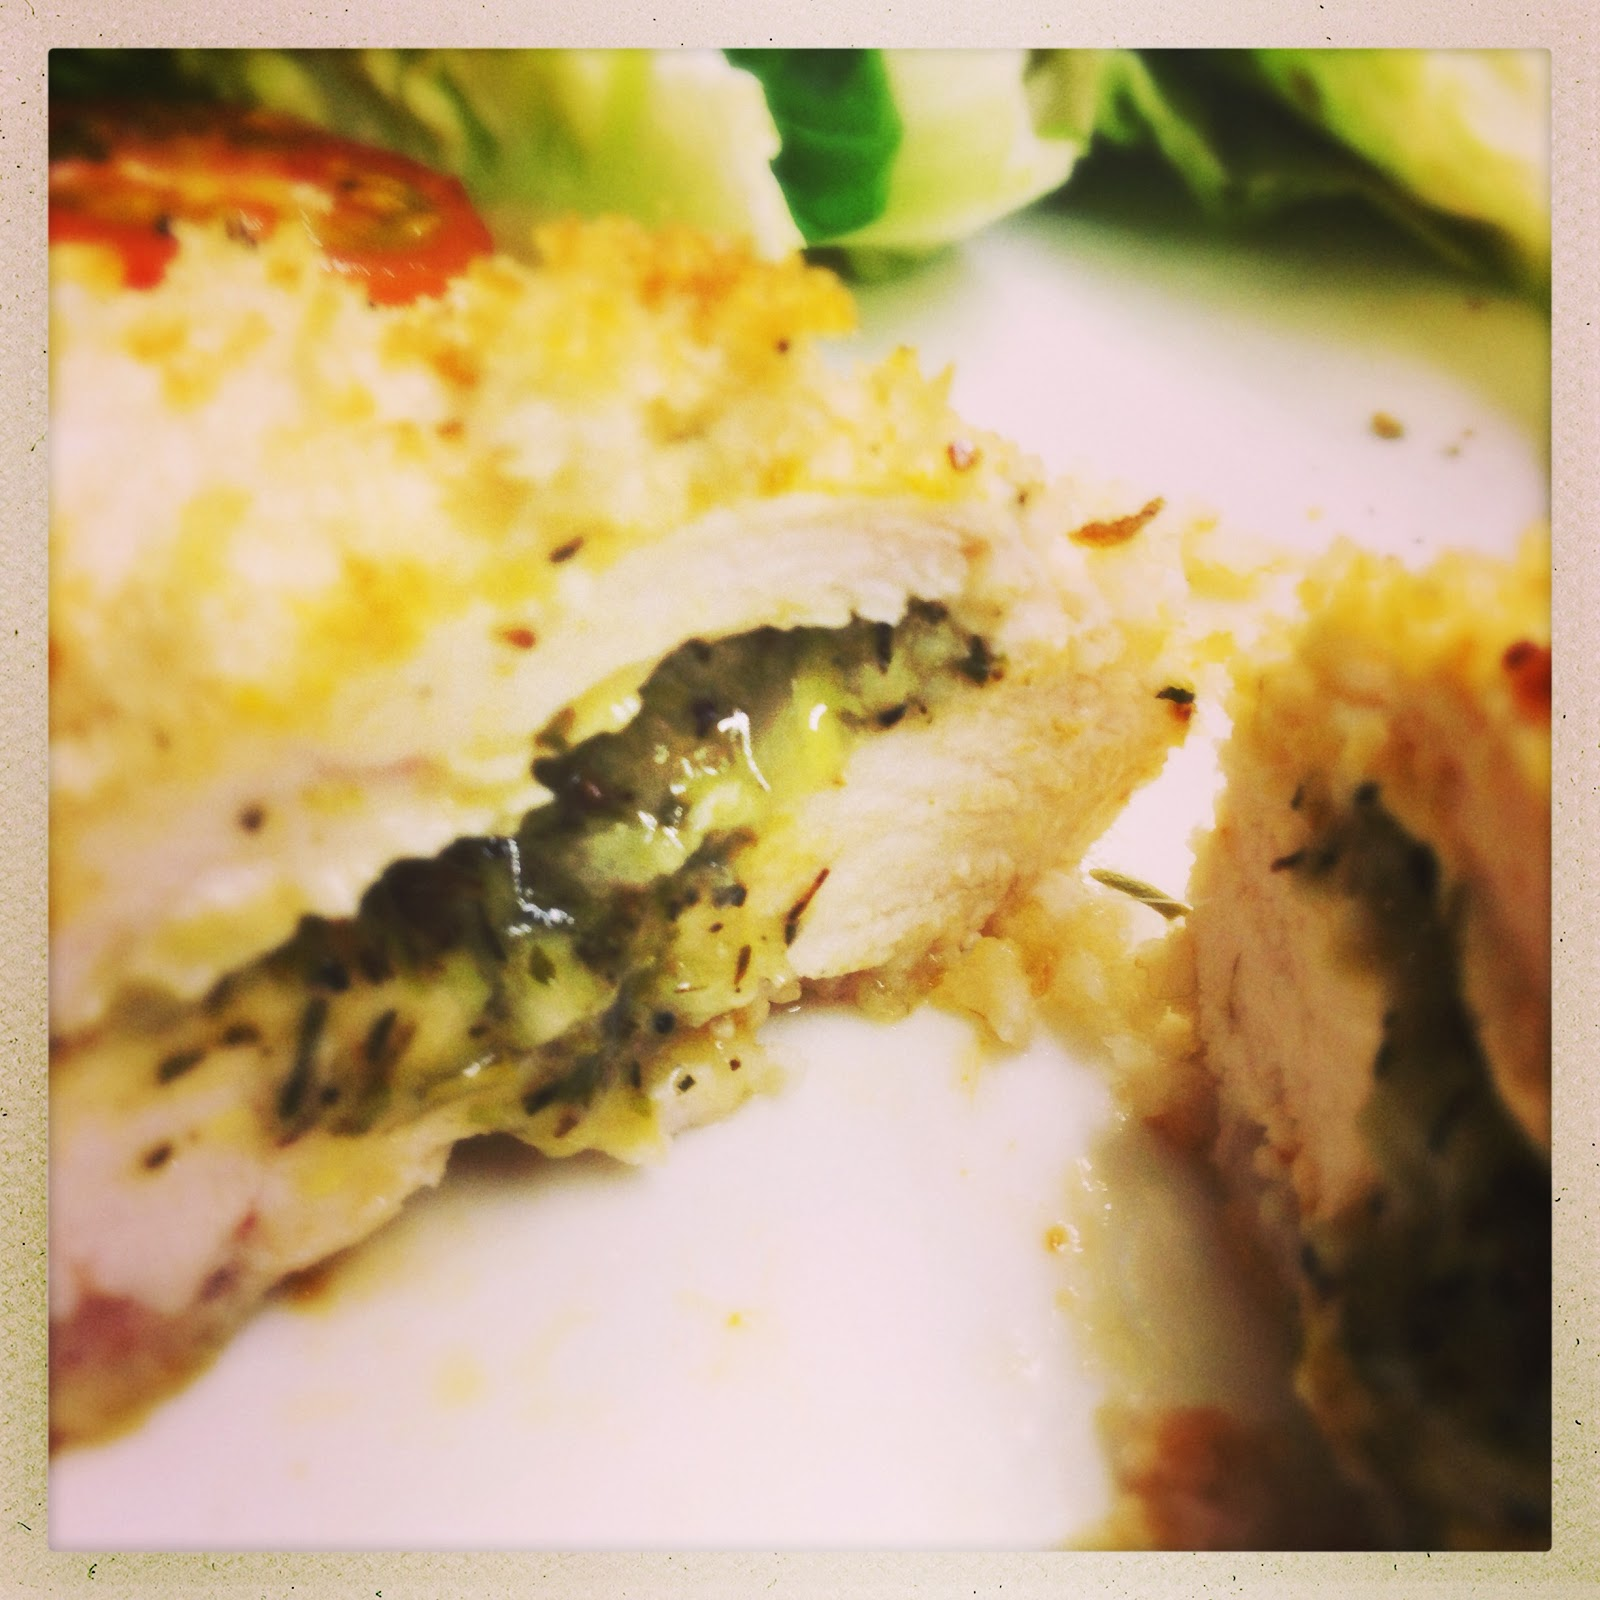 When You Cut Into The Chicken Kiev, You Should Have A Fabulously Crispy  Coating, Succulent, Perfectly Cooked White Chicken With A Garlicky,